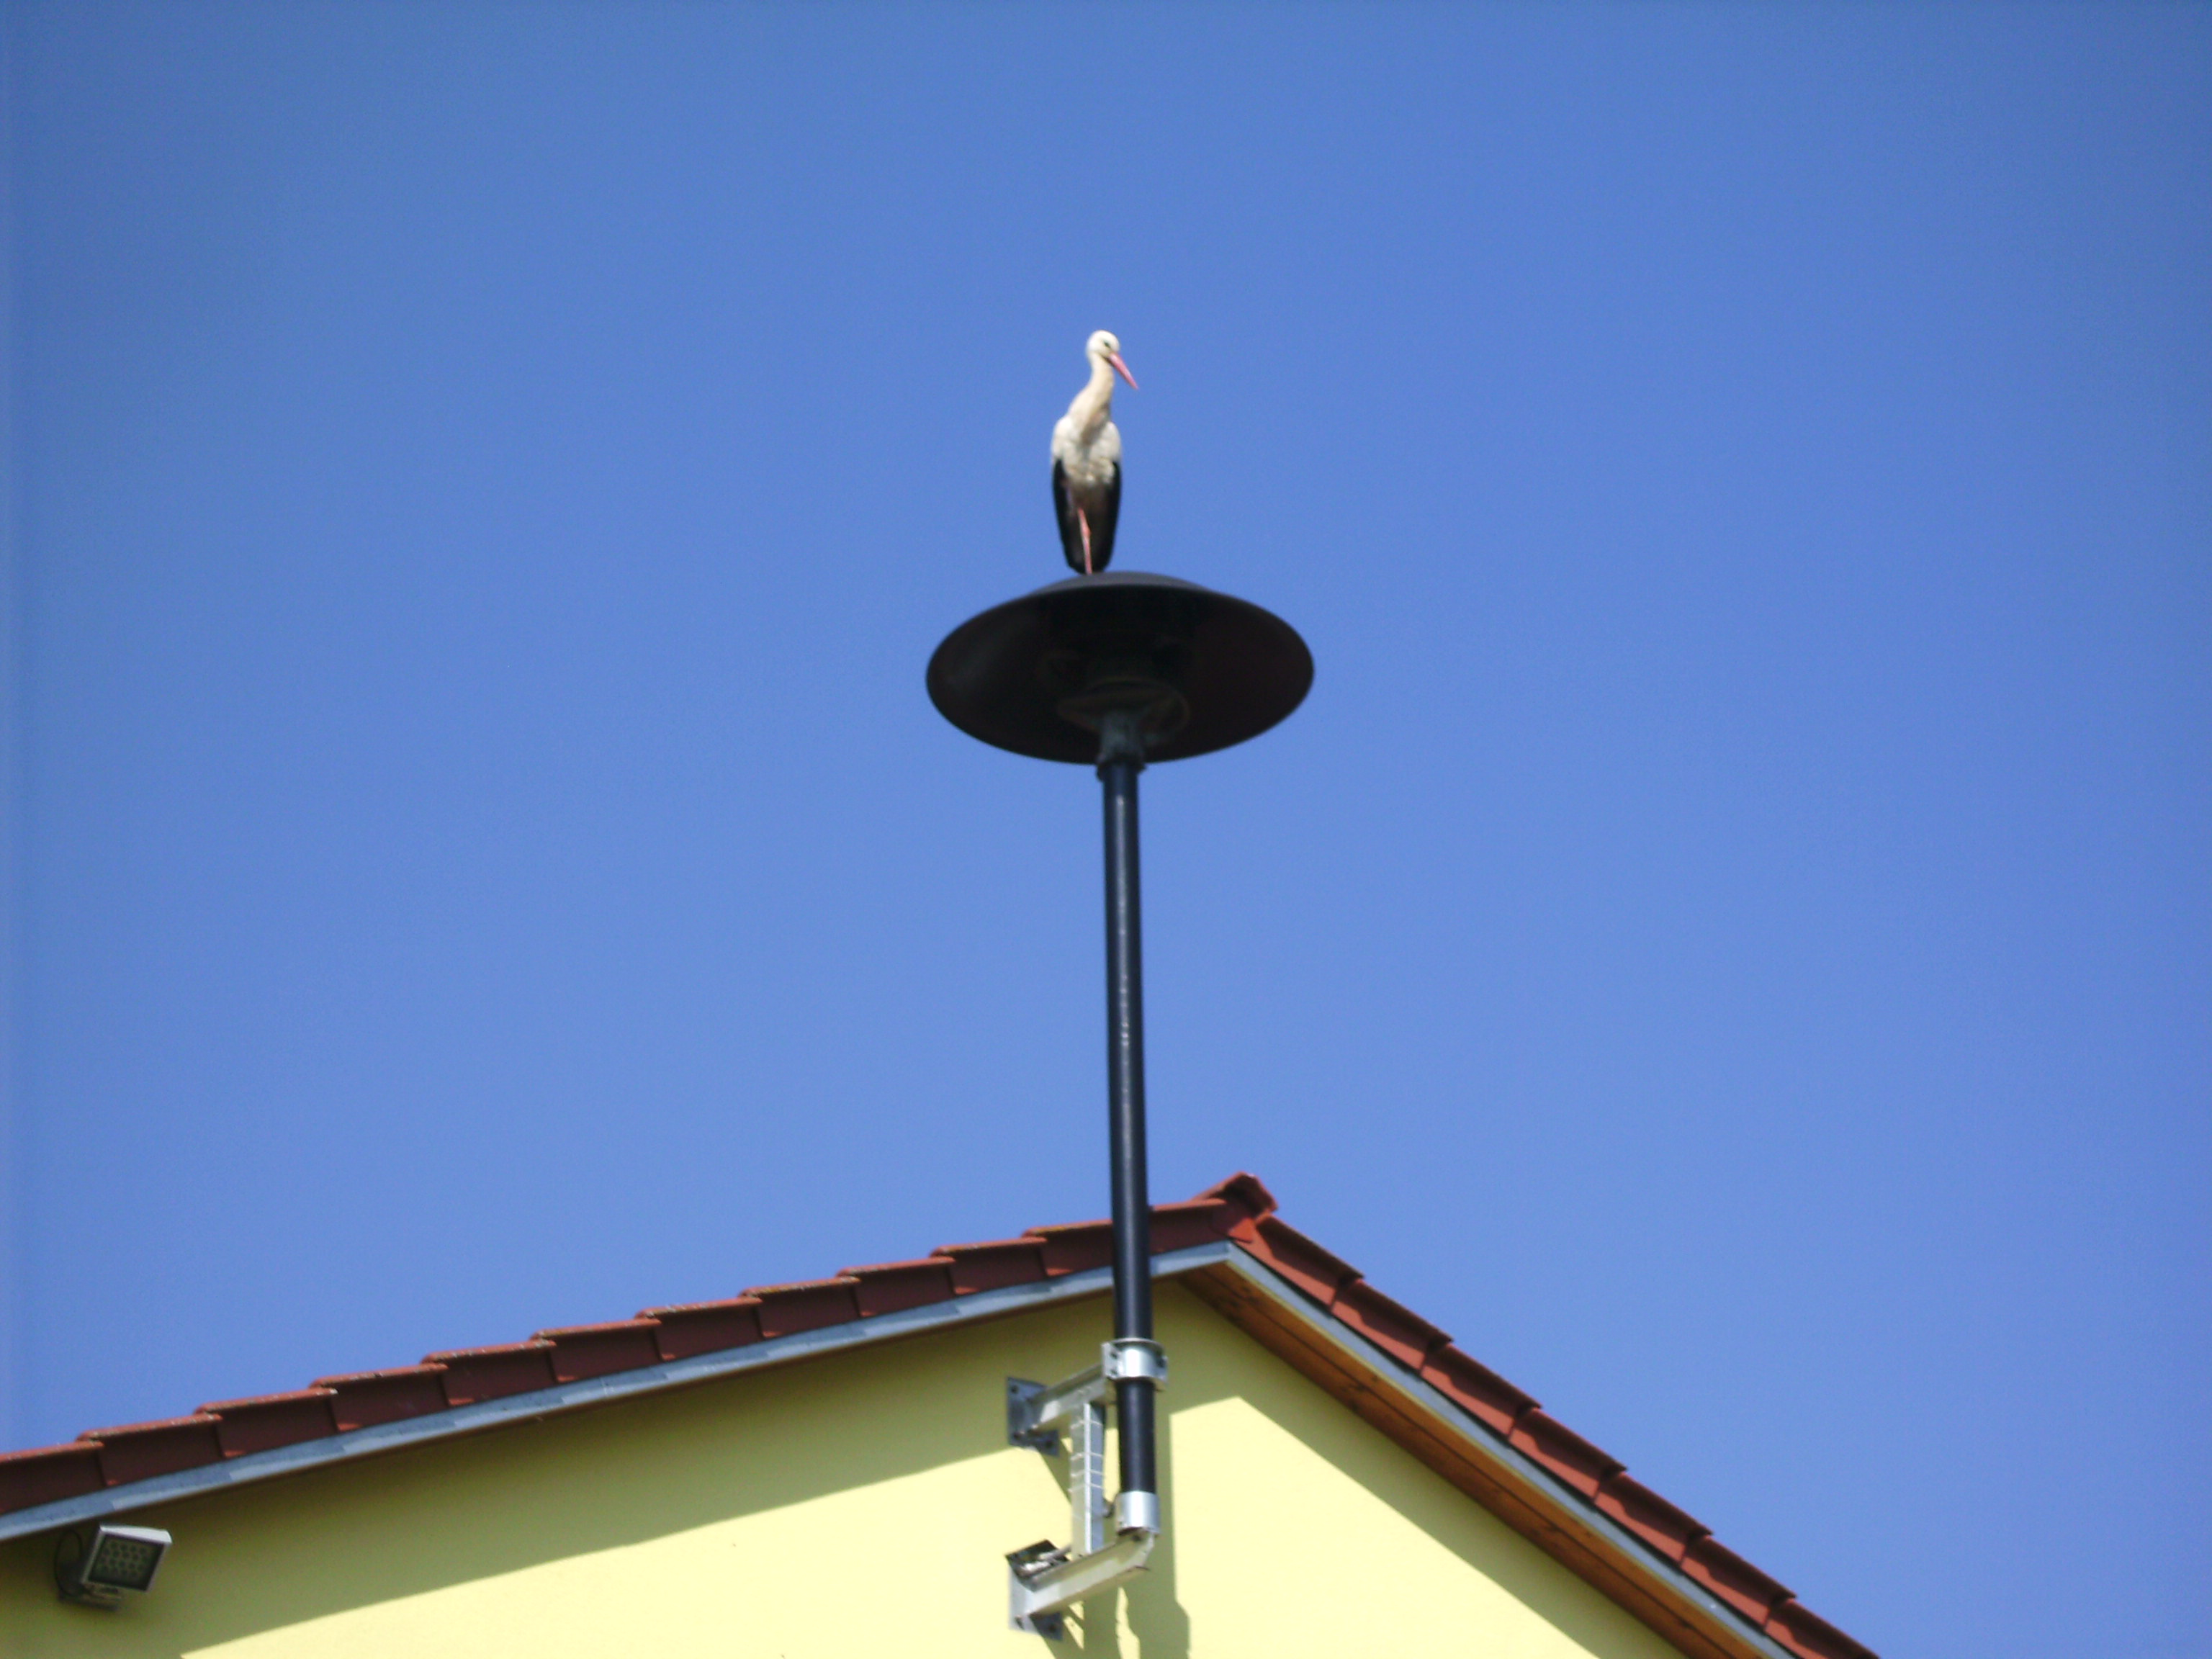 2014-03-29 - Storch am FW-Haus - 02